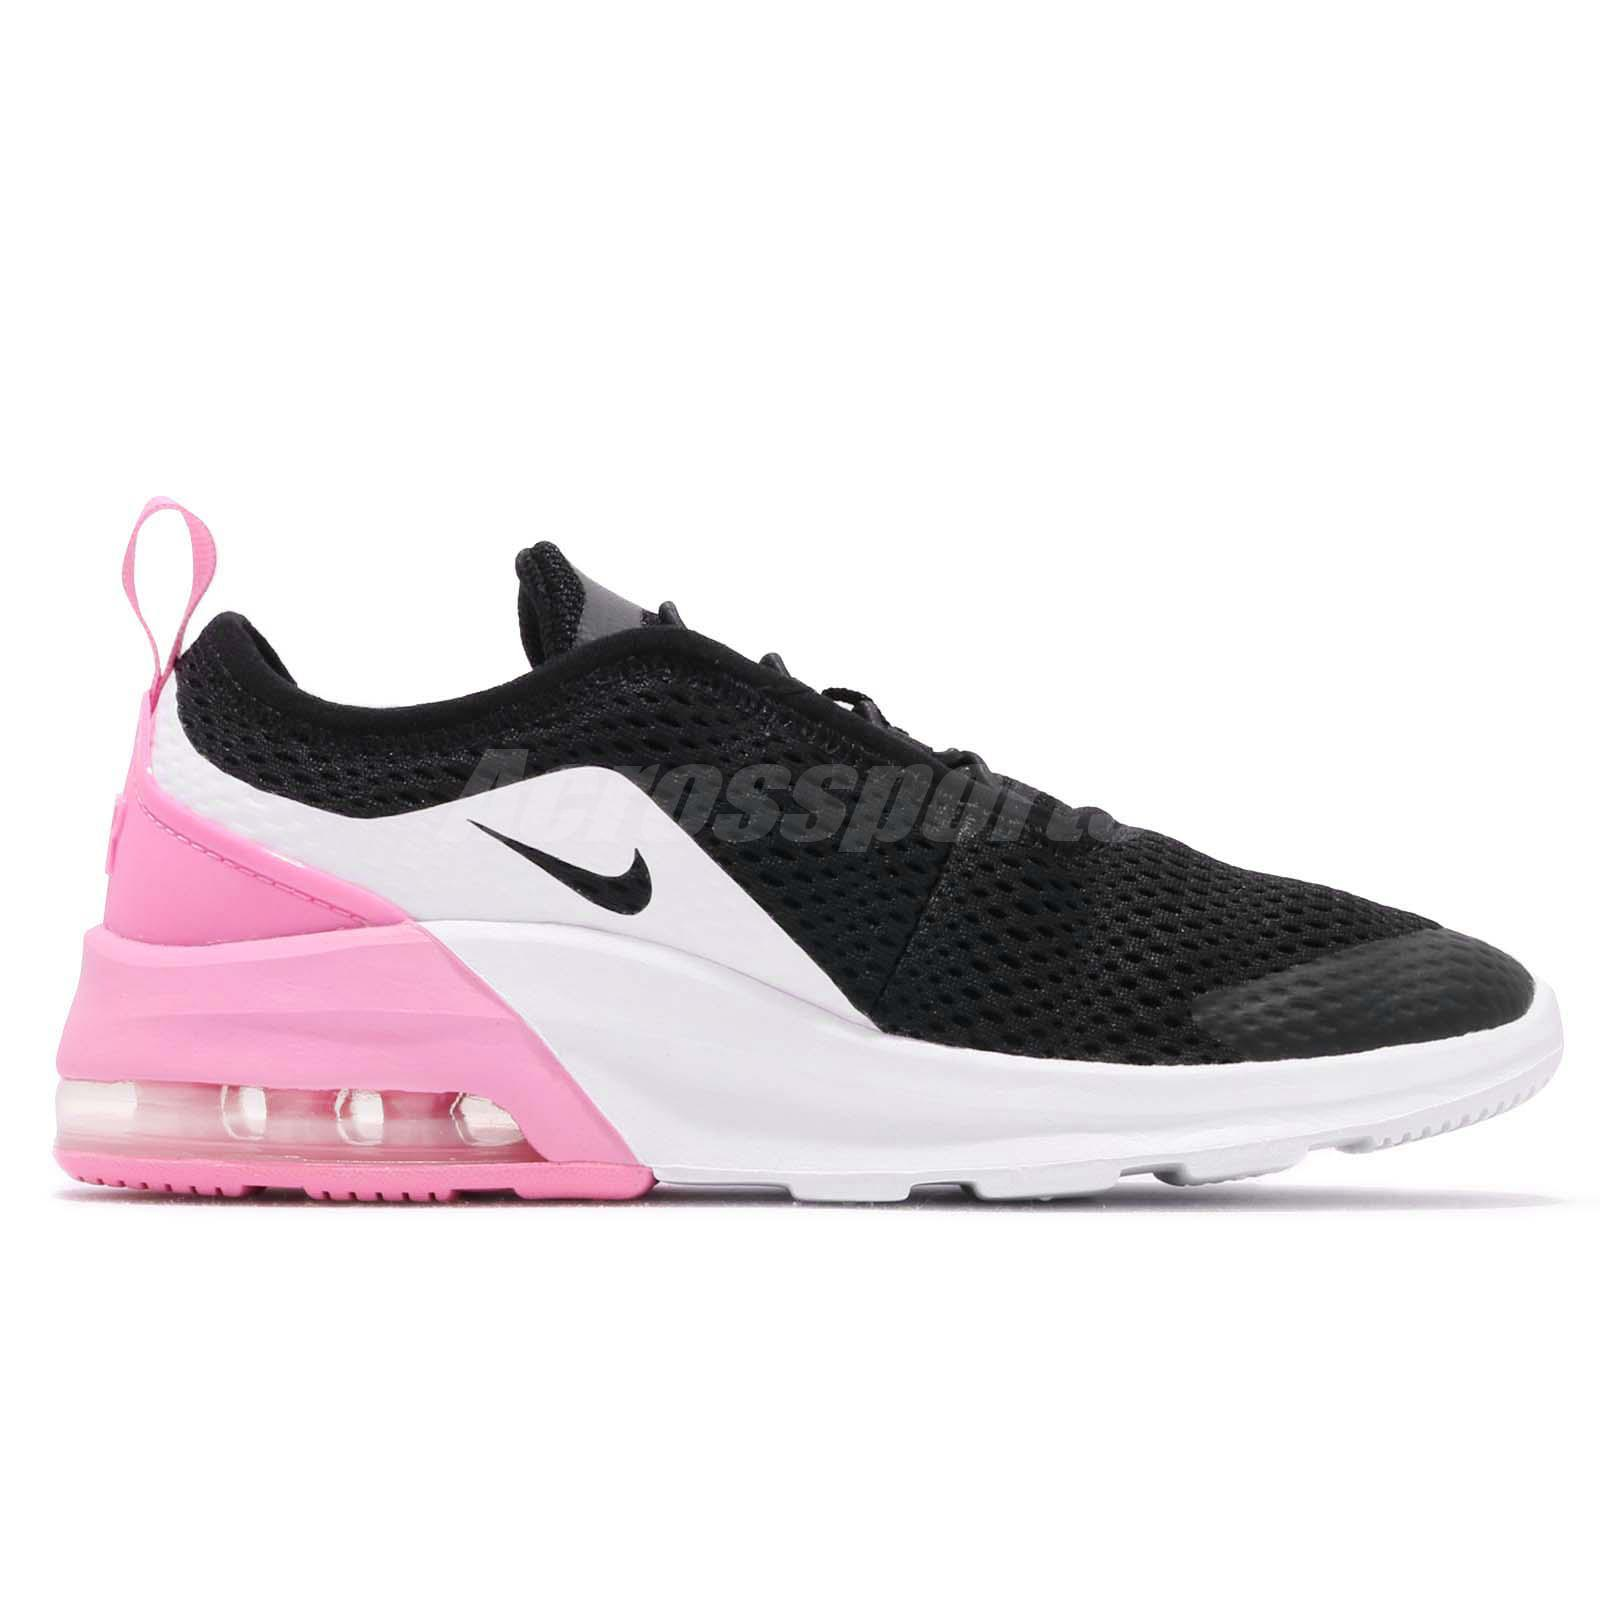 155bcf99c88e92 Details about Nike Air Max Motion 2 PSE Black Silver Pink Kid Preschool  Shoes AQ2747-001